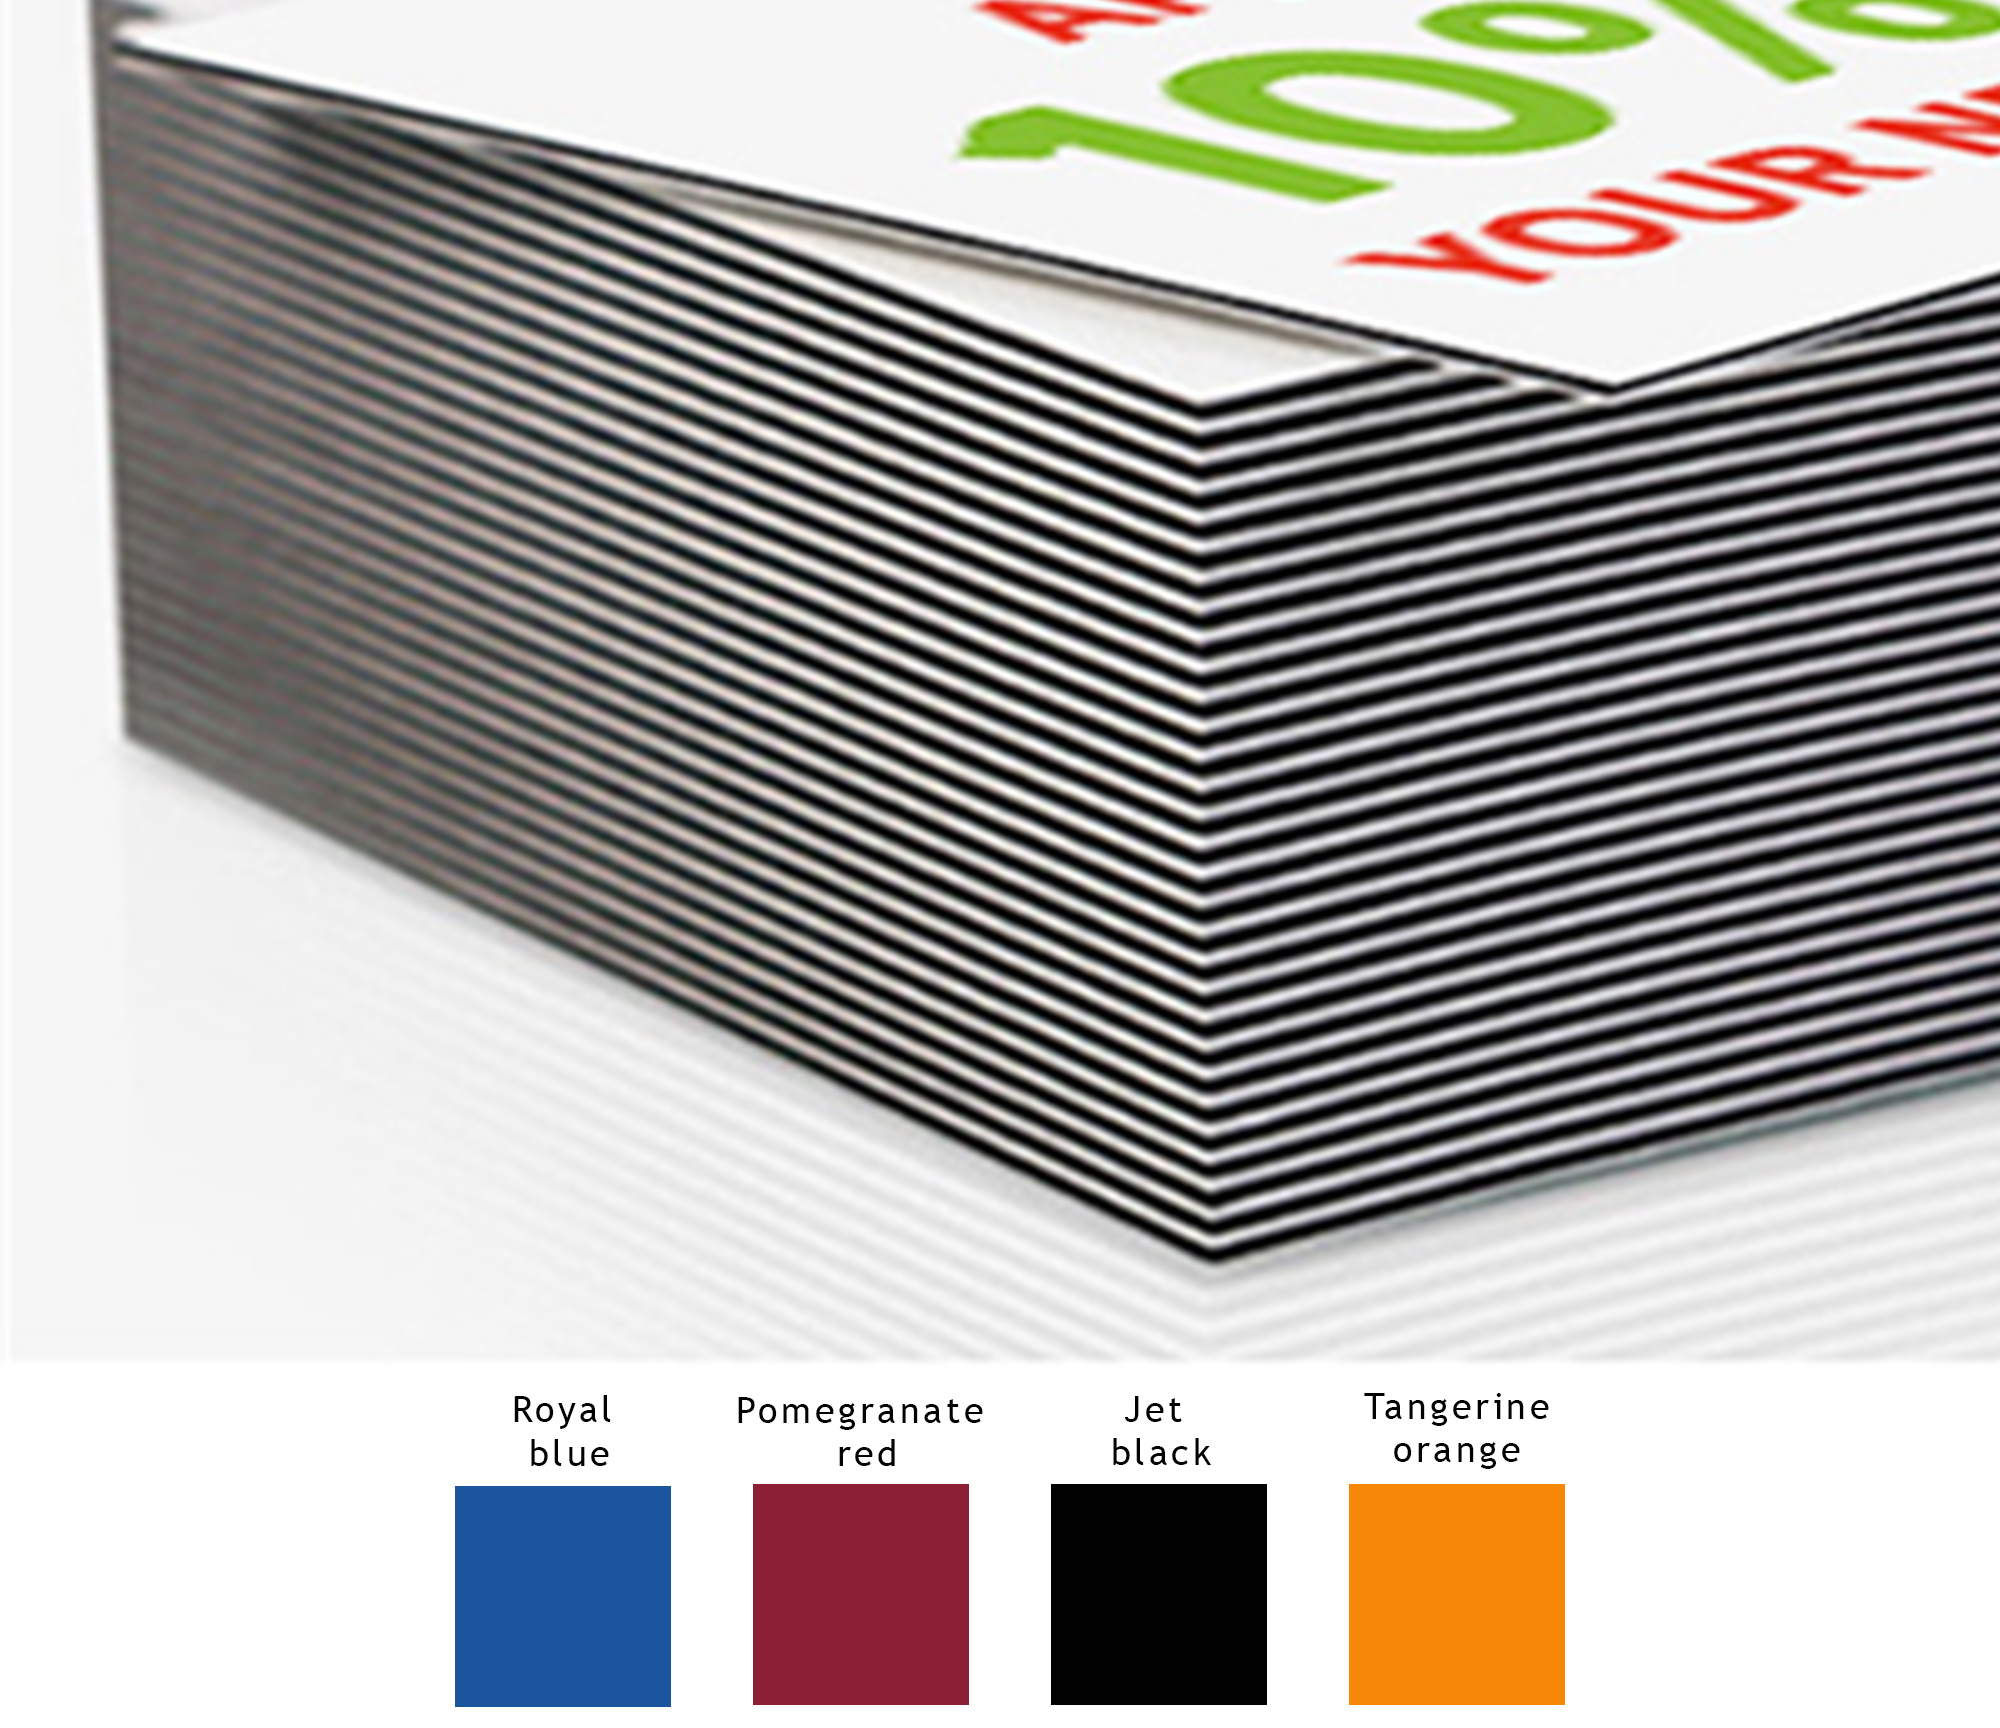 https://www.k12print.com/images/products_gallery_images/triple-layer-color-business-cards.jpg